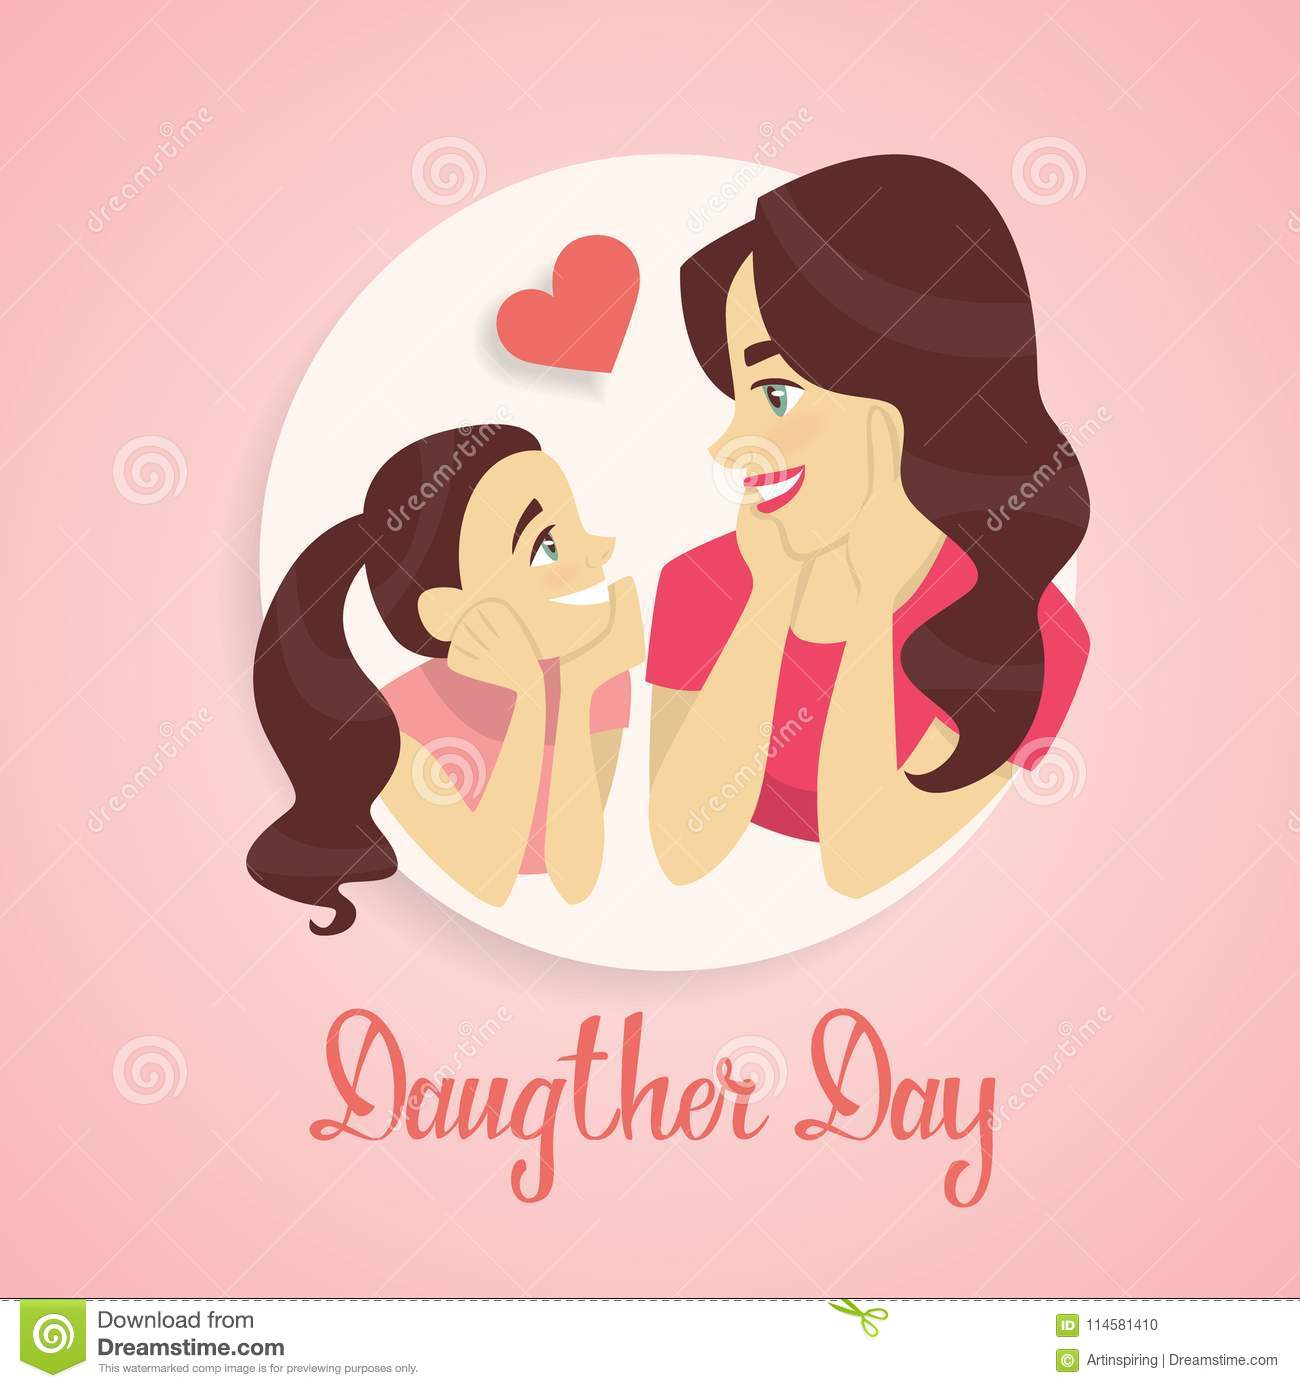 Happy daughters day stock vector illustration of illustration download happy daughters day stock vector illustration of illustration 114581410 m4hsunfo